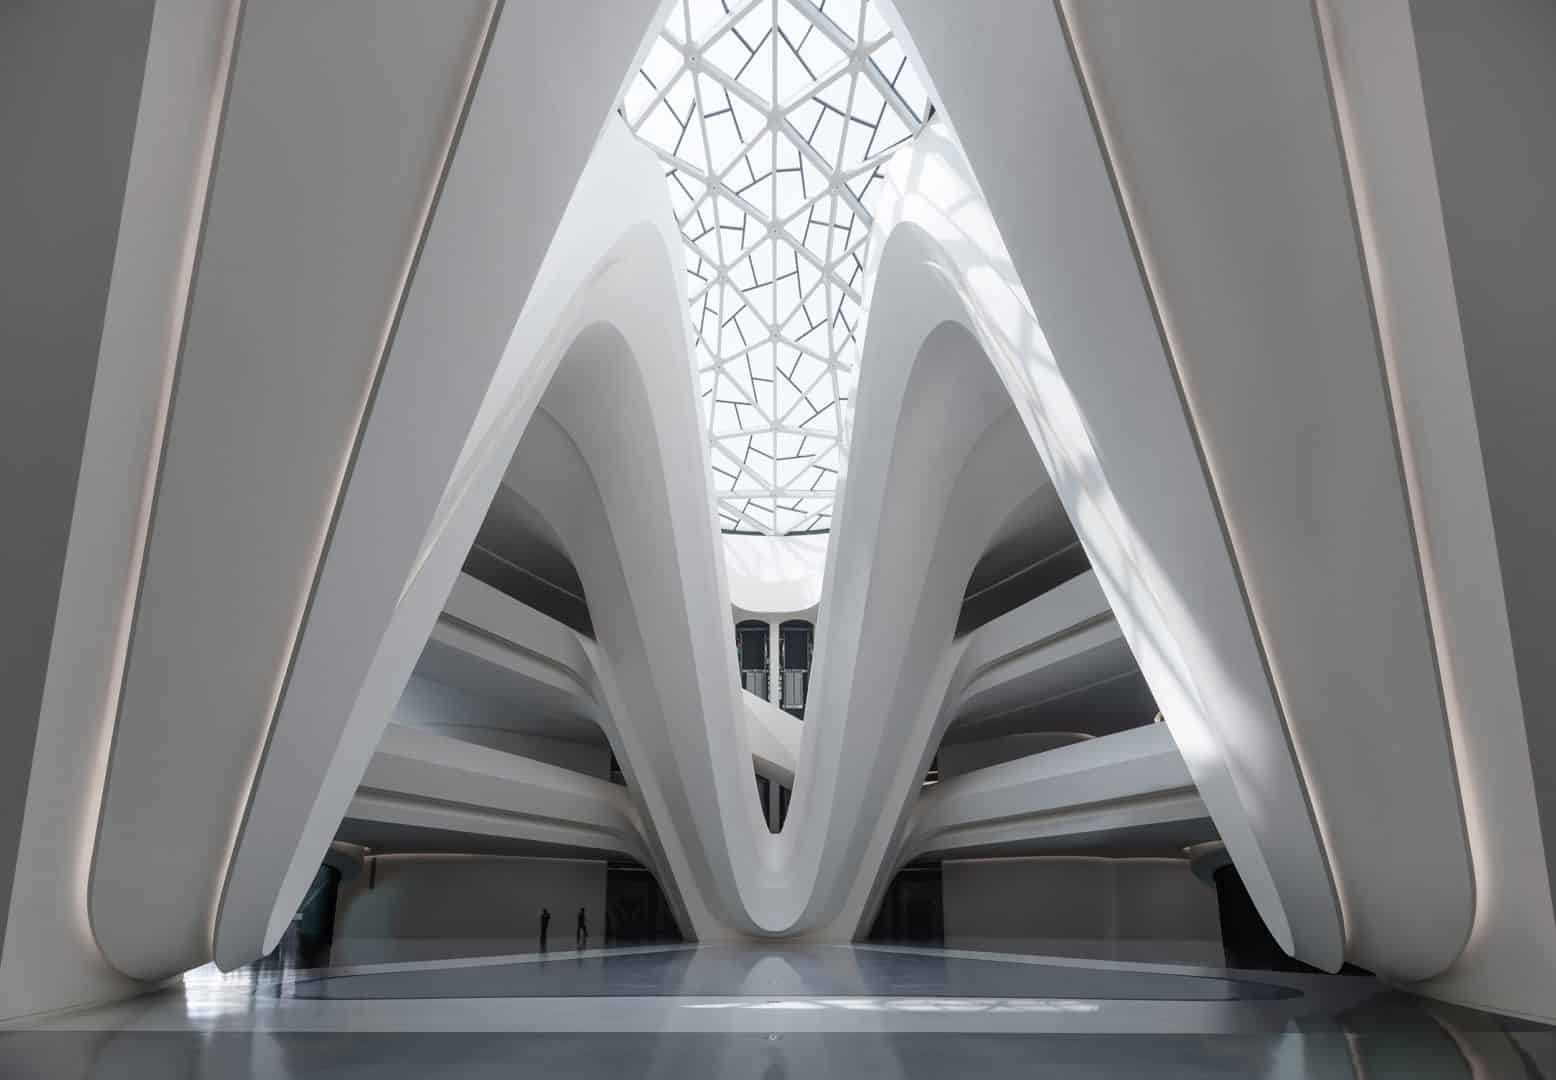 Zaha Hadid Projects -World Architecture Community Awards 2020 - Changsha Meixihu International Culture and Art Centre - 7